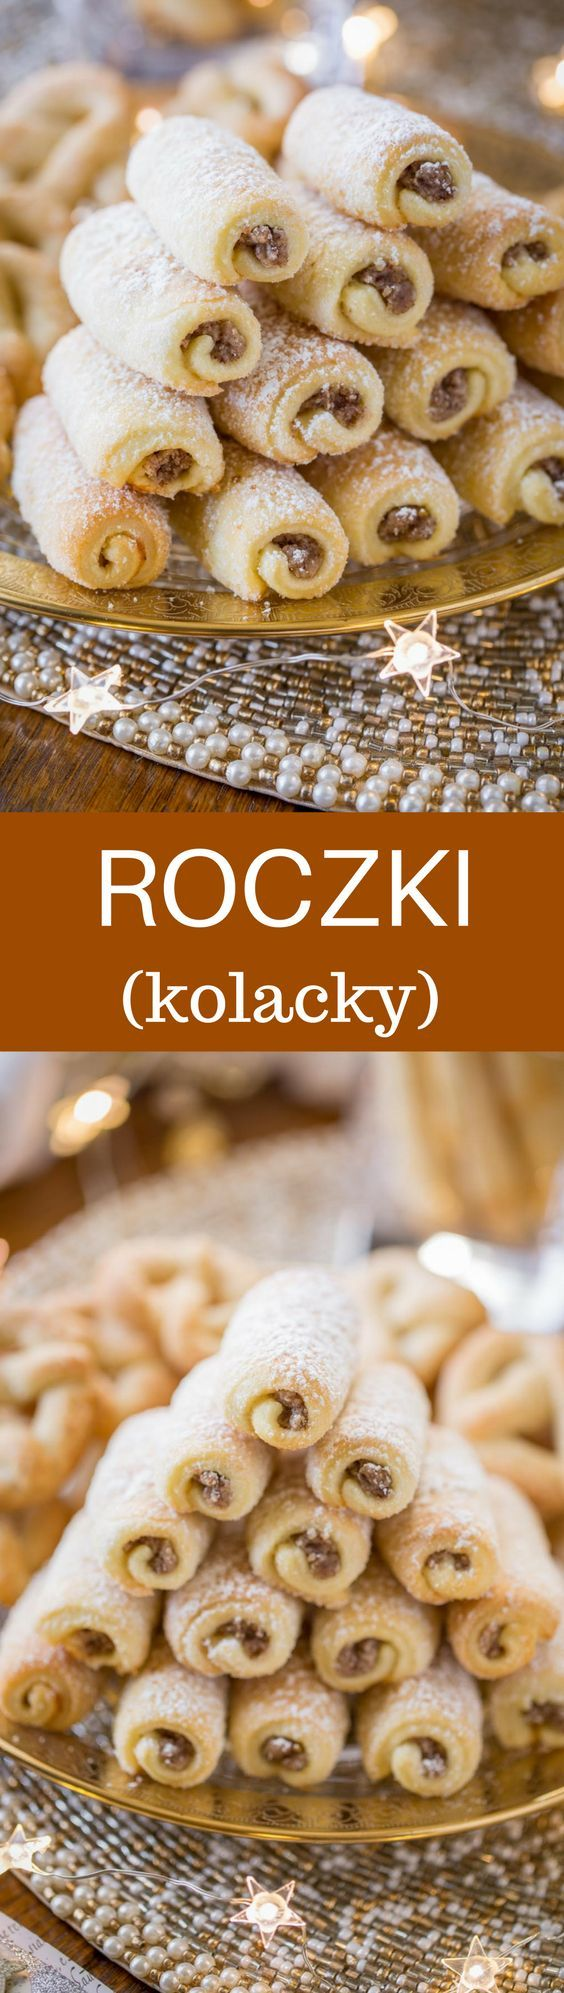 Roczki Cookies (Kolacky) are made with a tender, yeasted dough rolled up in a cigar shape with a simple, lemony, ground nut filling. www.savingdessert.com